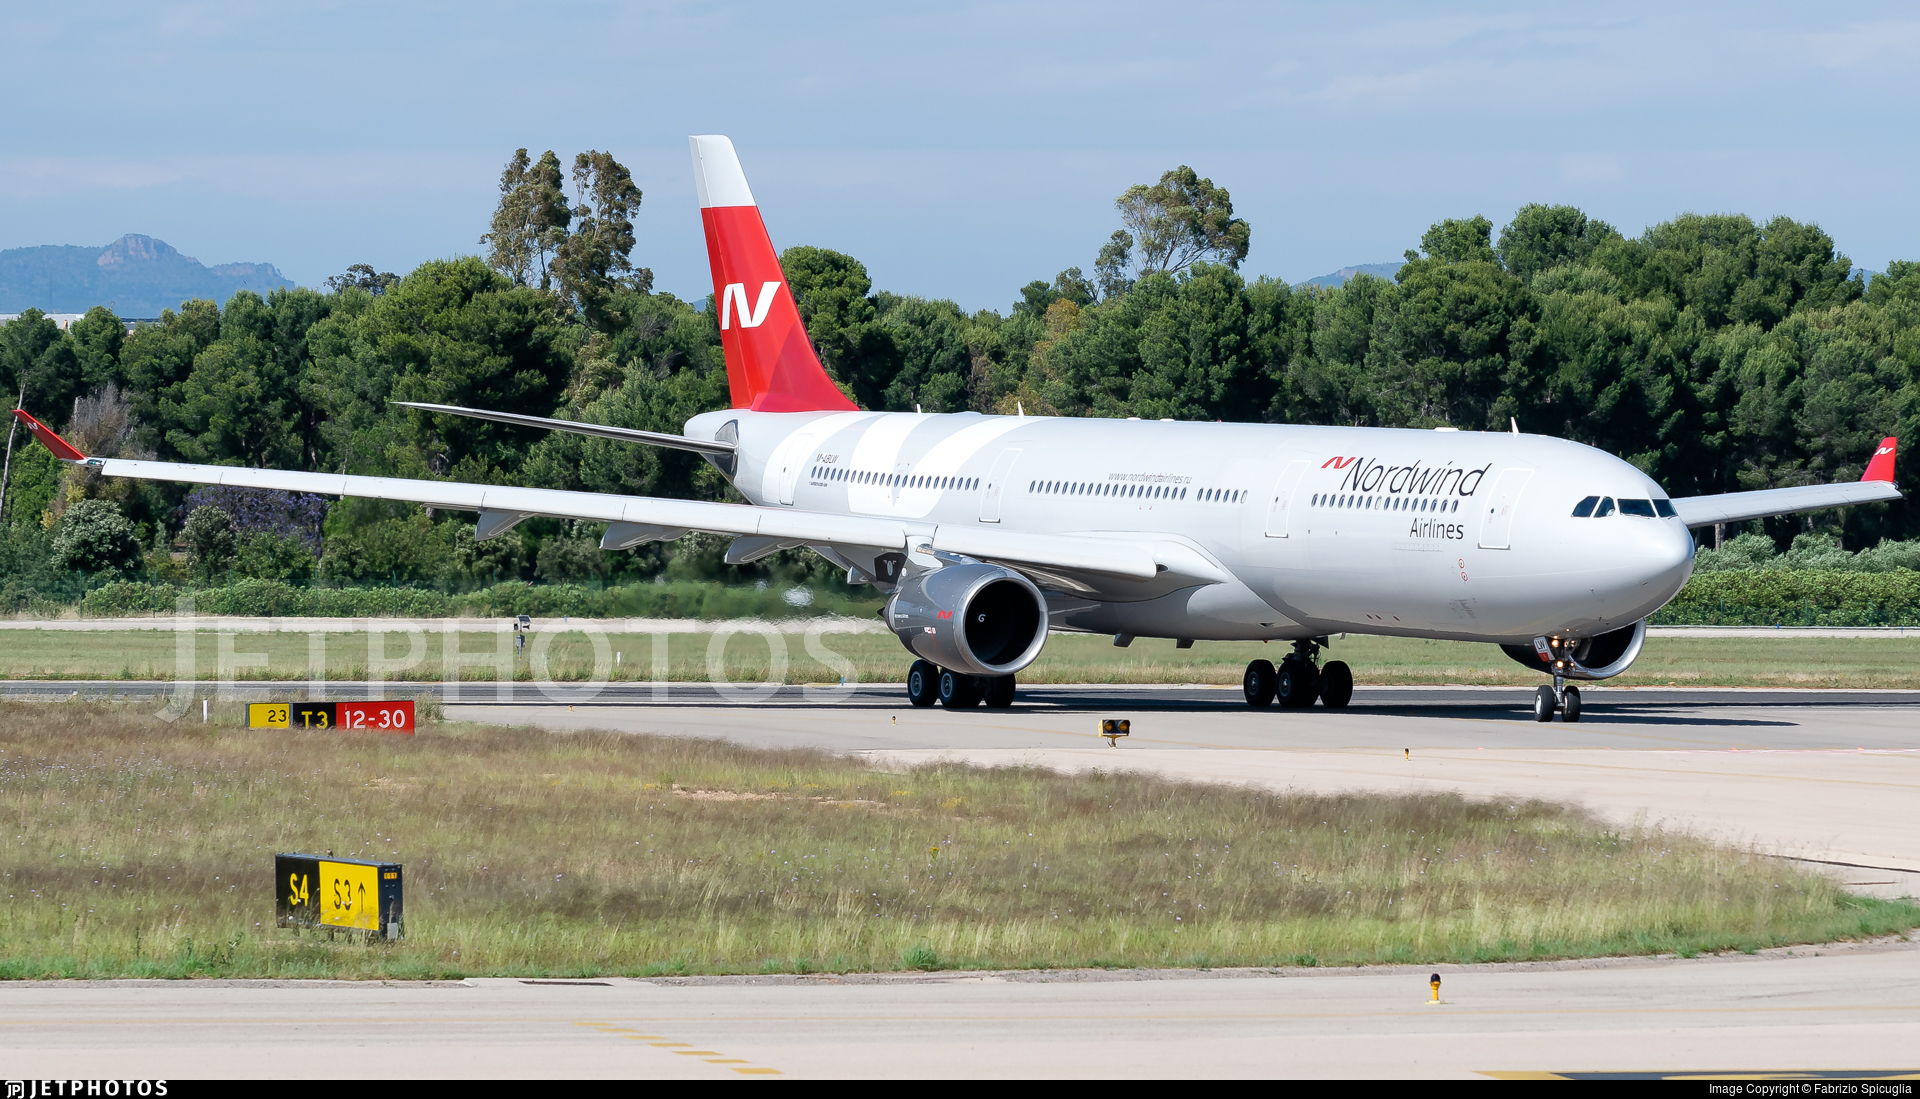 M-ABLW - Airbus A330-302 - Nordwind Airlines